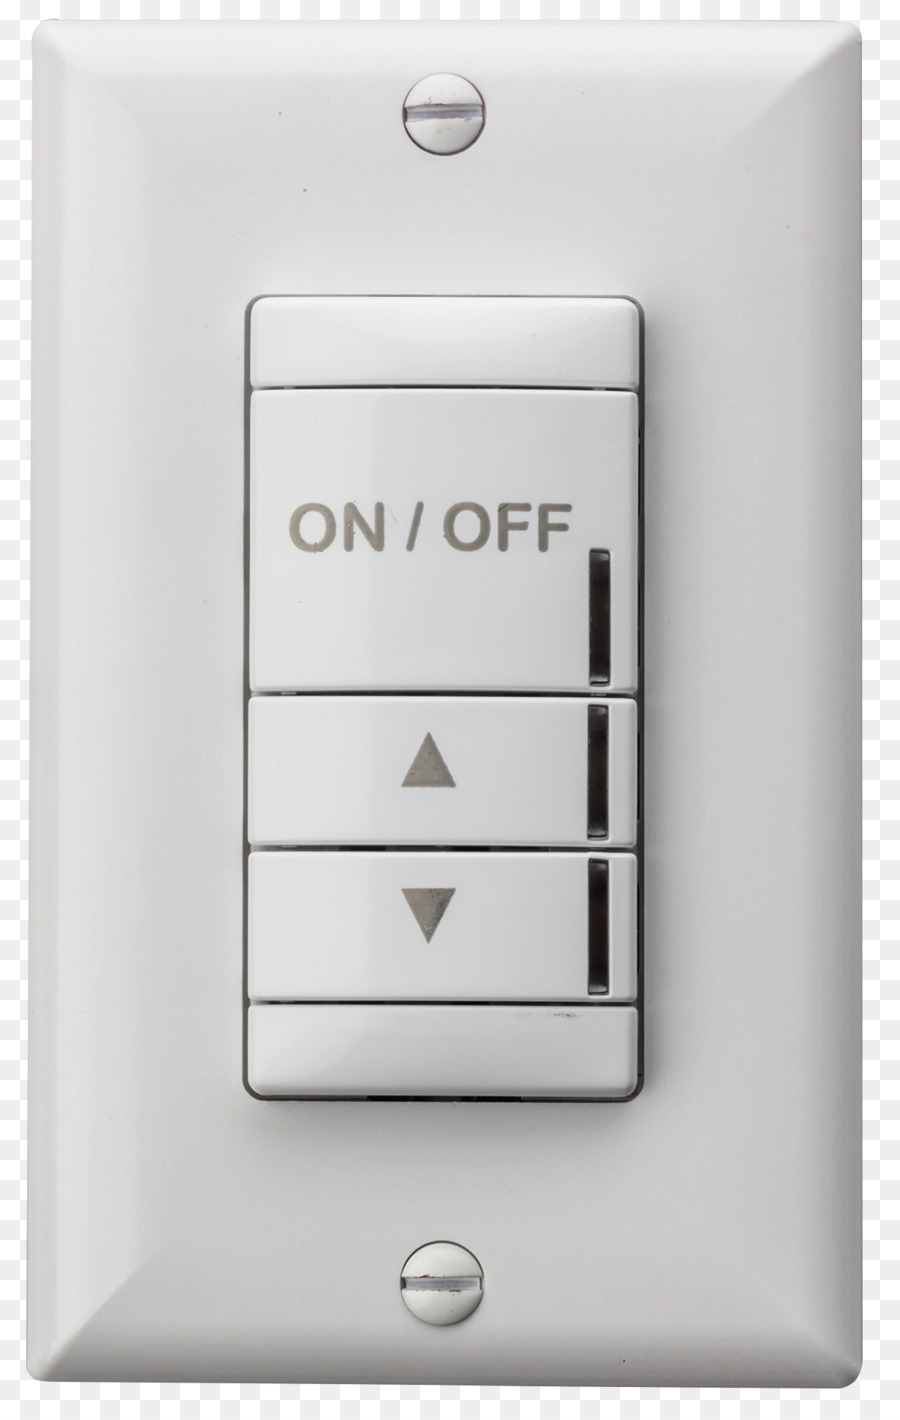 hight resolution of latching relay light pushbutton light switch switch png